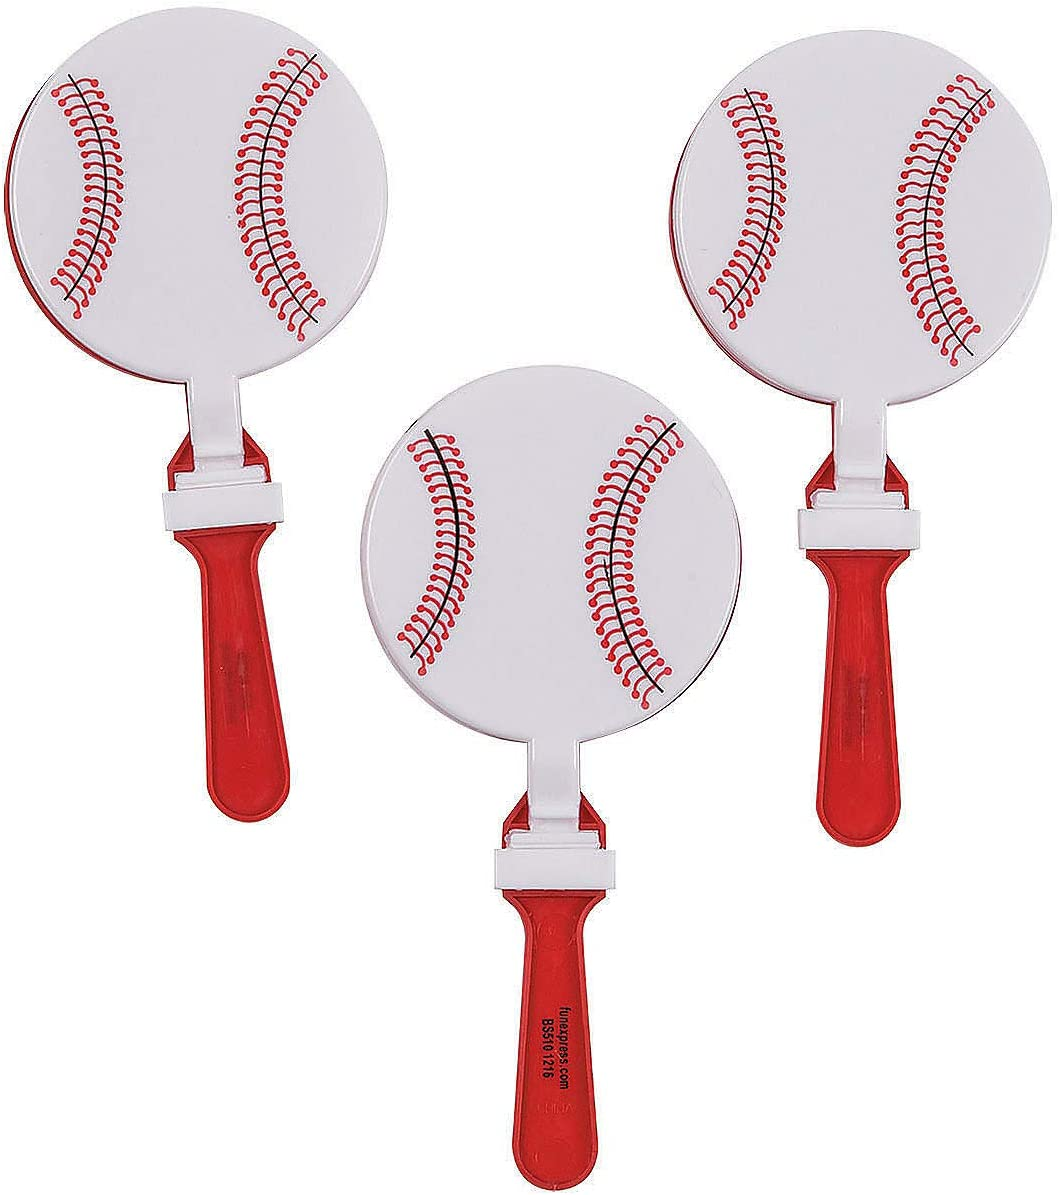 Baseball Clappers Baseball Party Favors - Sports Noisemakers - 12 pack: Toys & Games